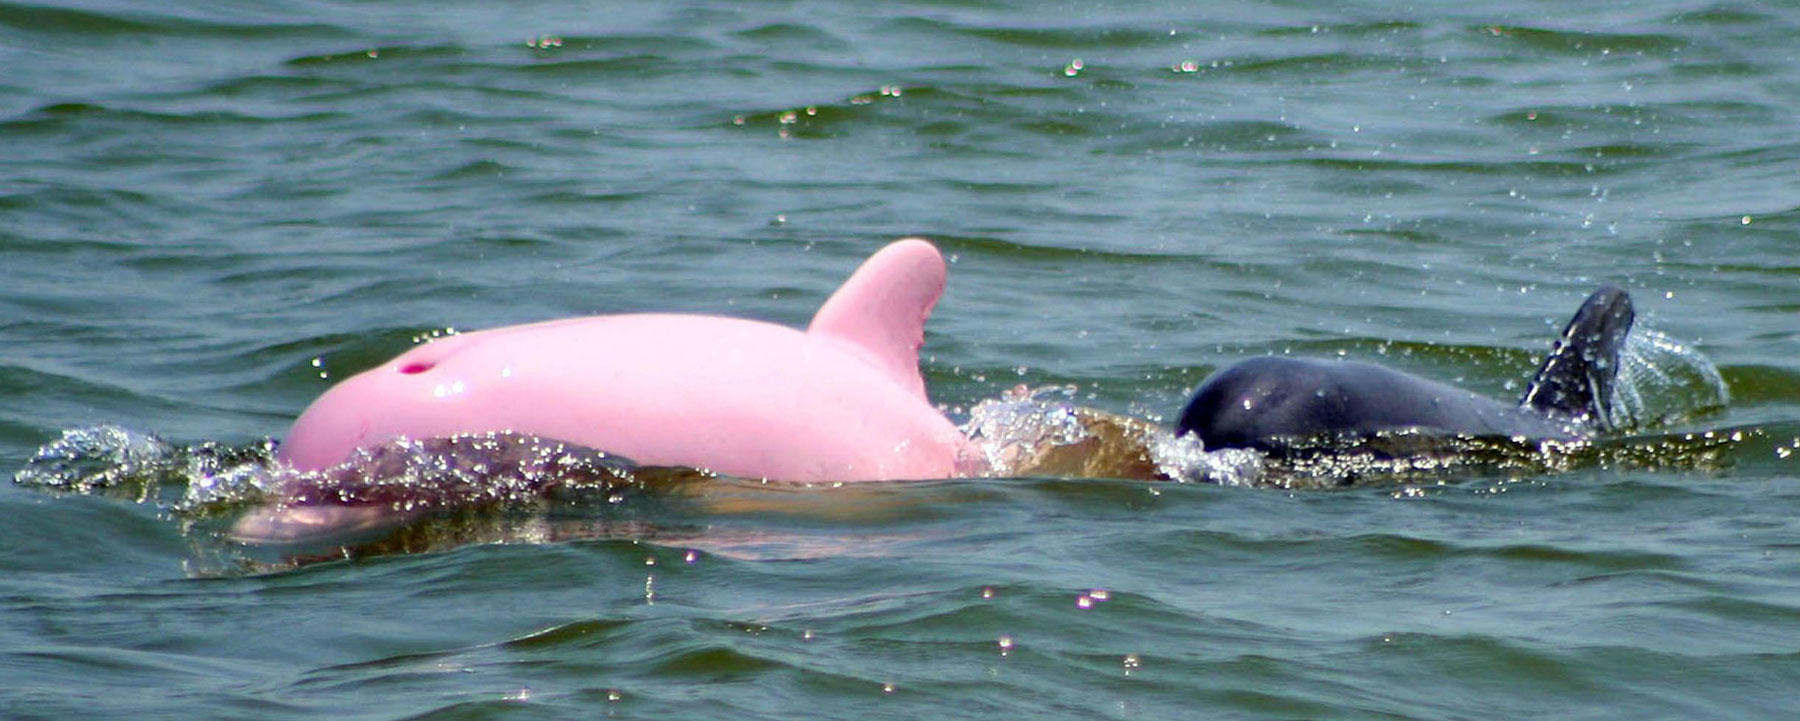 Pinky the pink dolphin